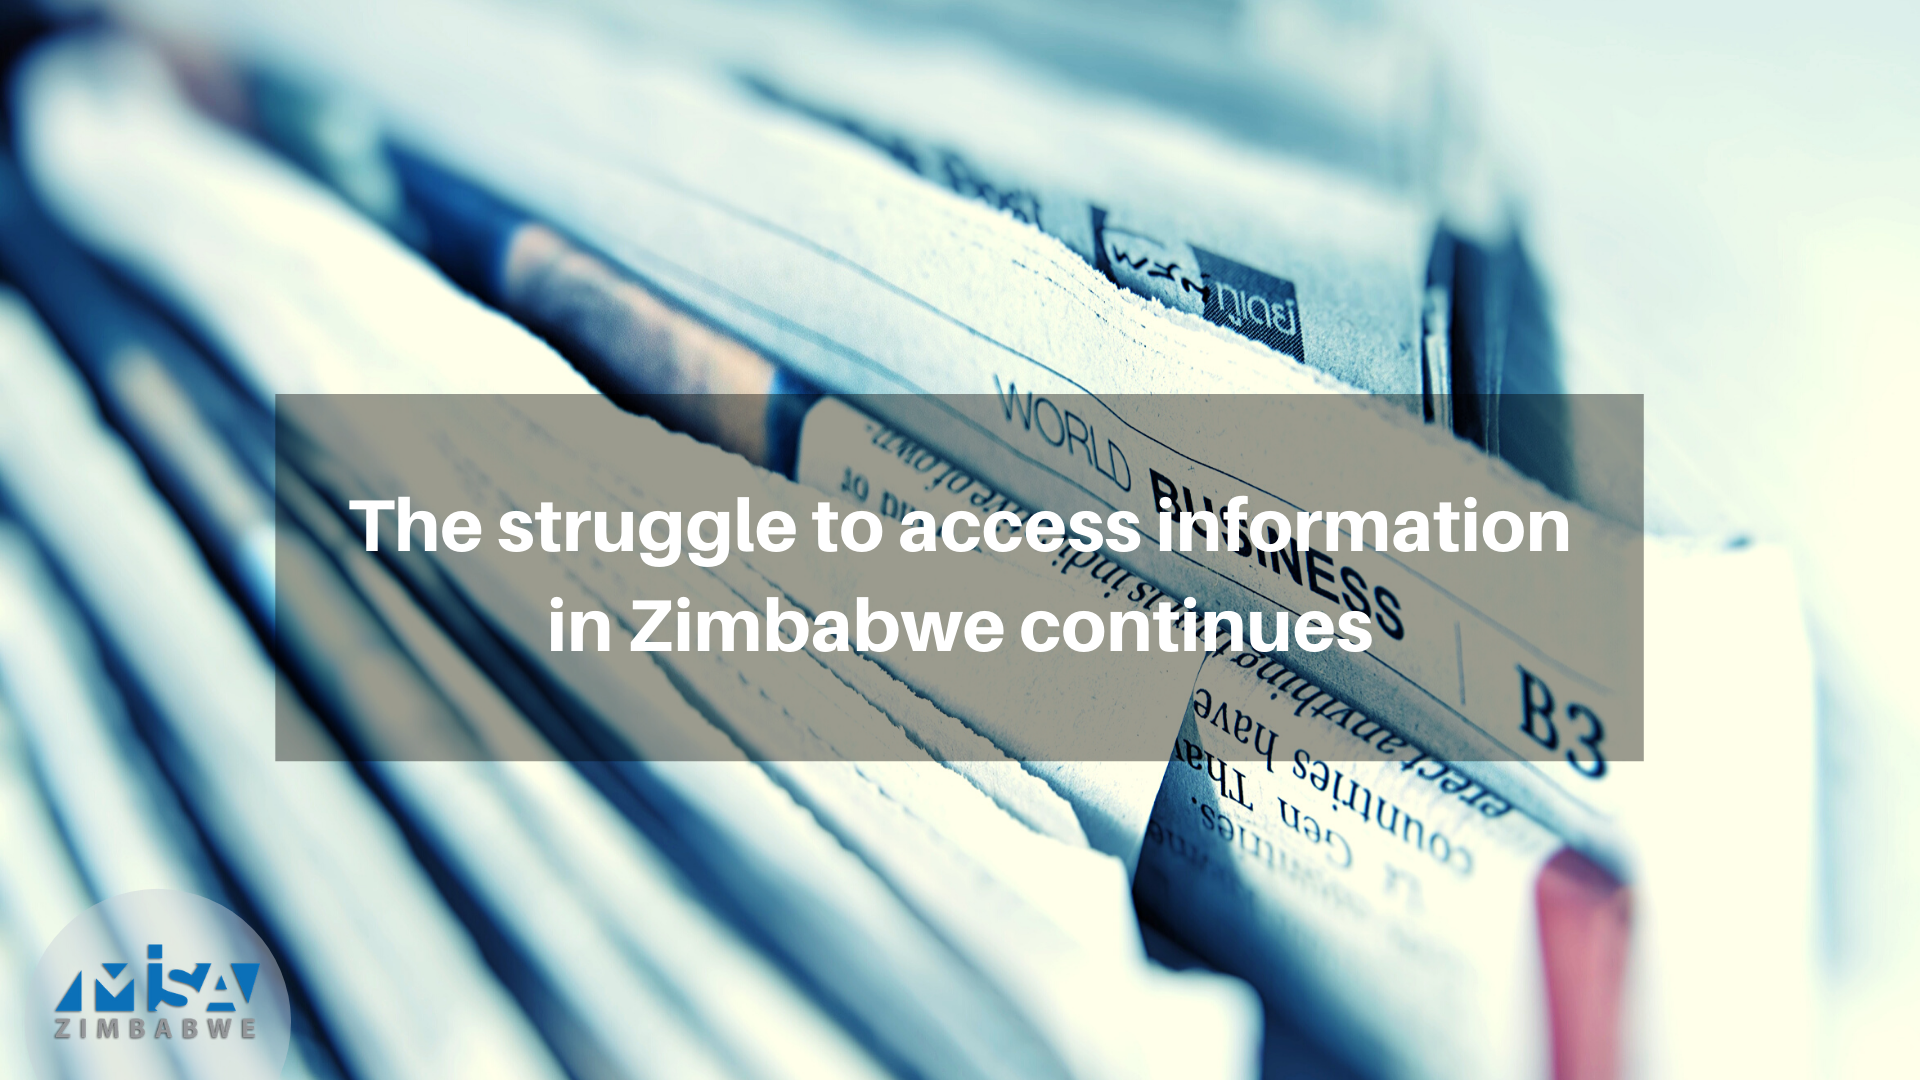 The struggle to access information in Zimbabwe continues